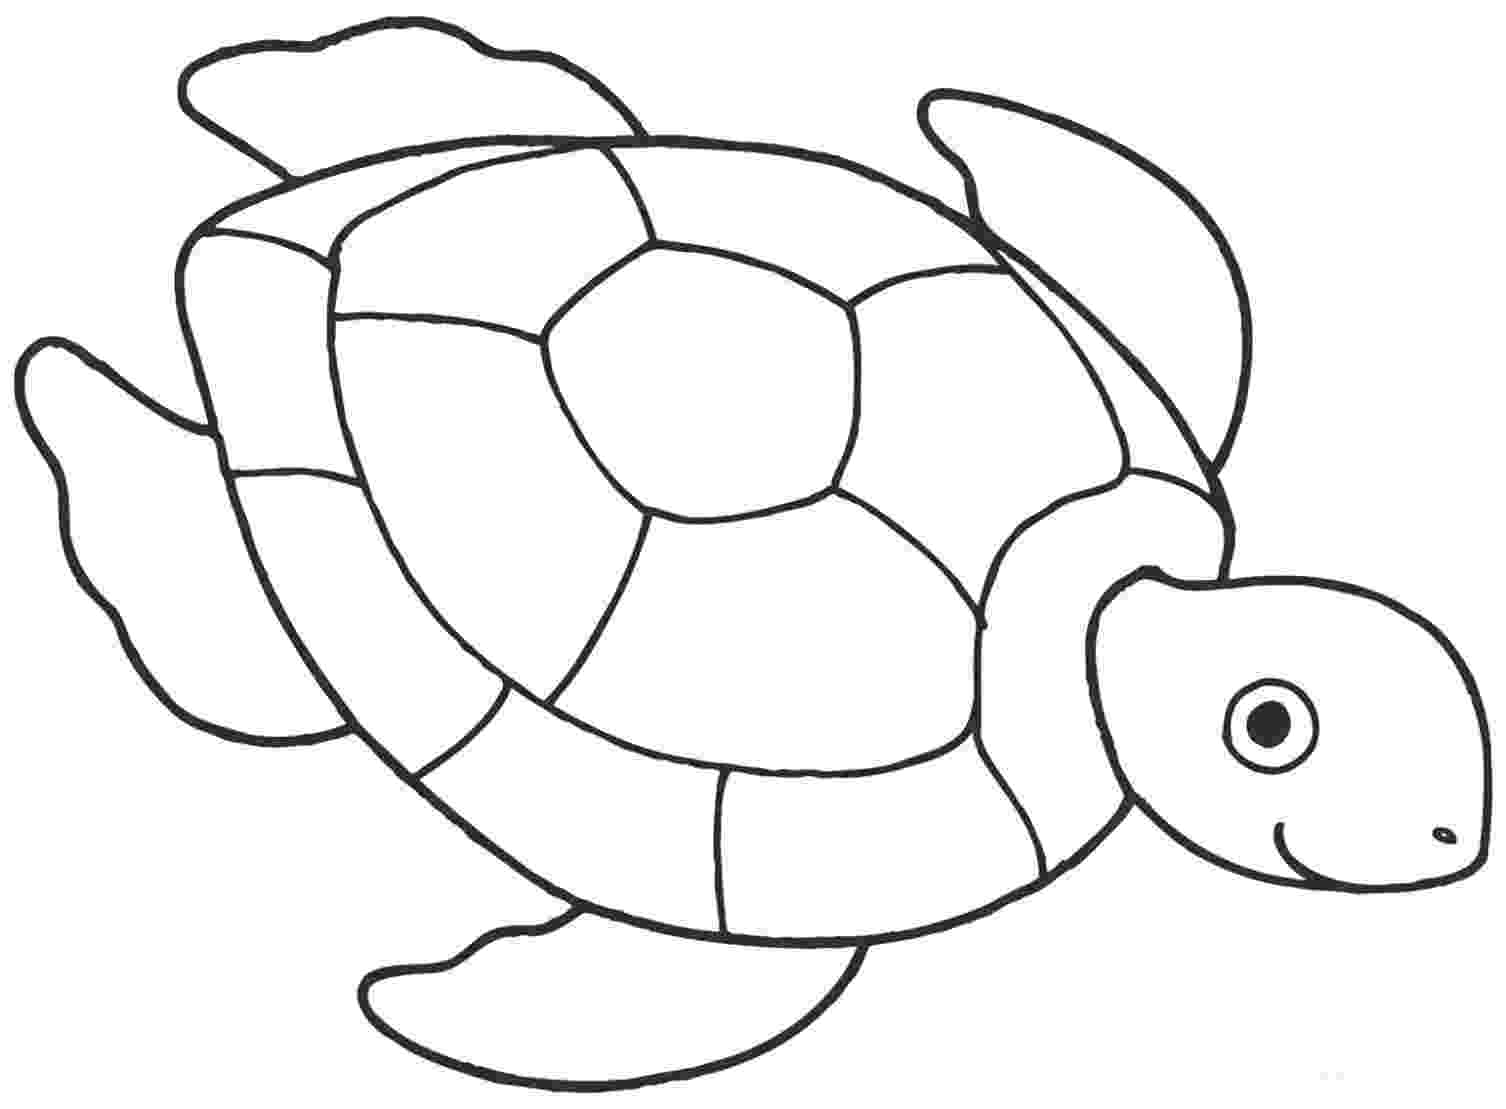 turtle coloring pictures to print free printable turtle coloring pages for kids cool2bkids pictures to print turtle coloring